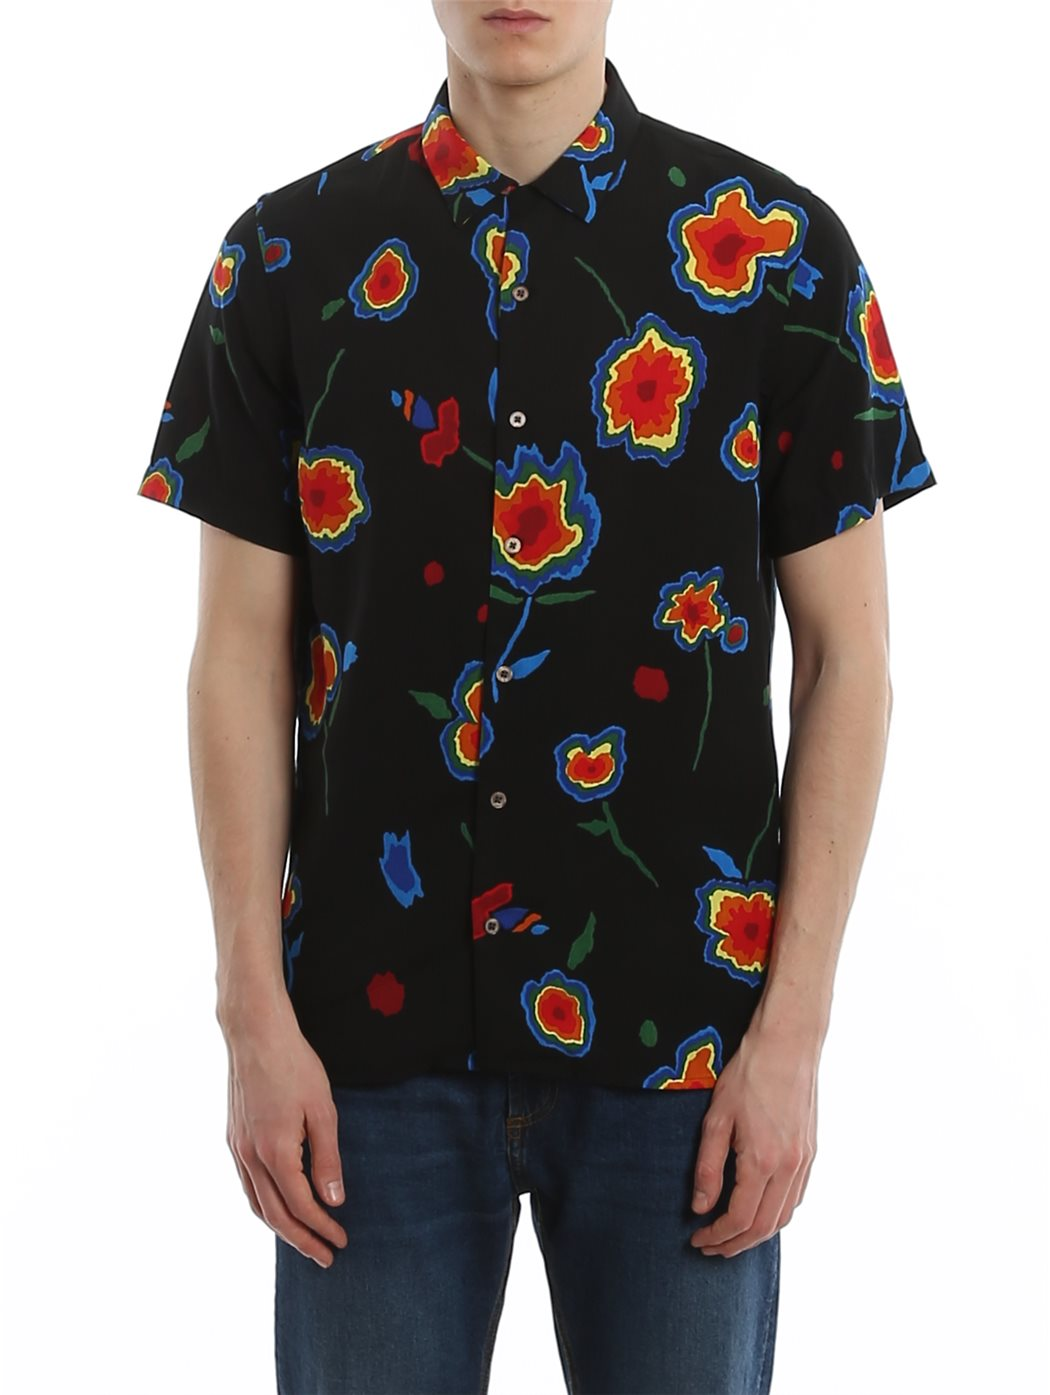 PAUL SMITH M2R-114R 79-BLACK T-SHIRT